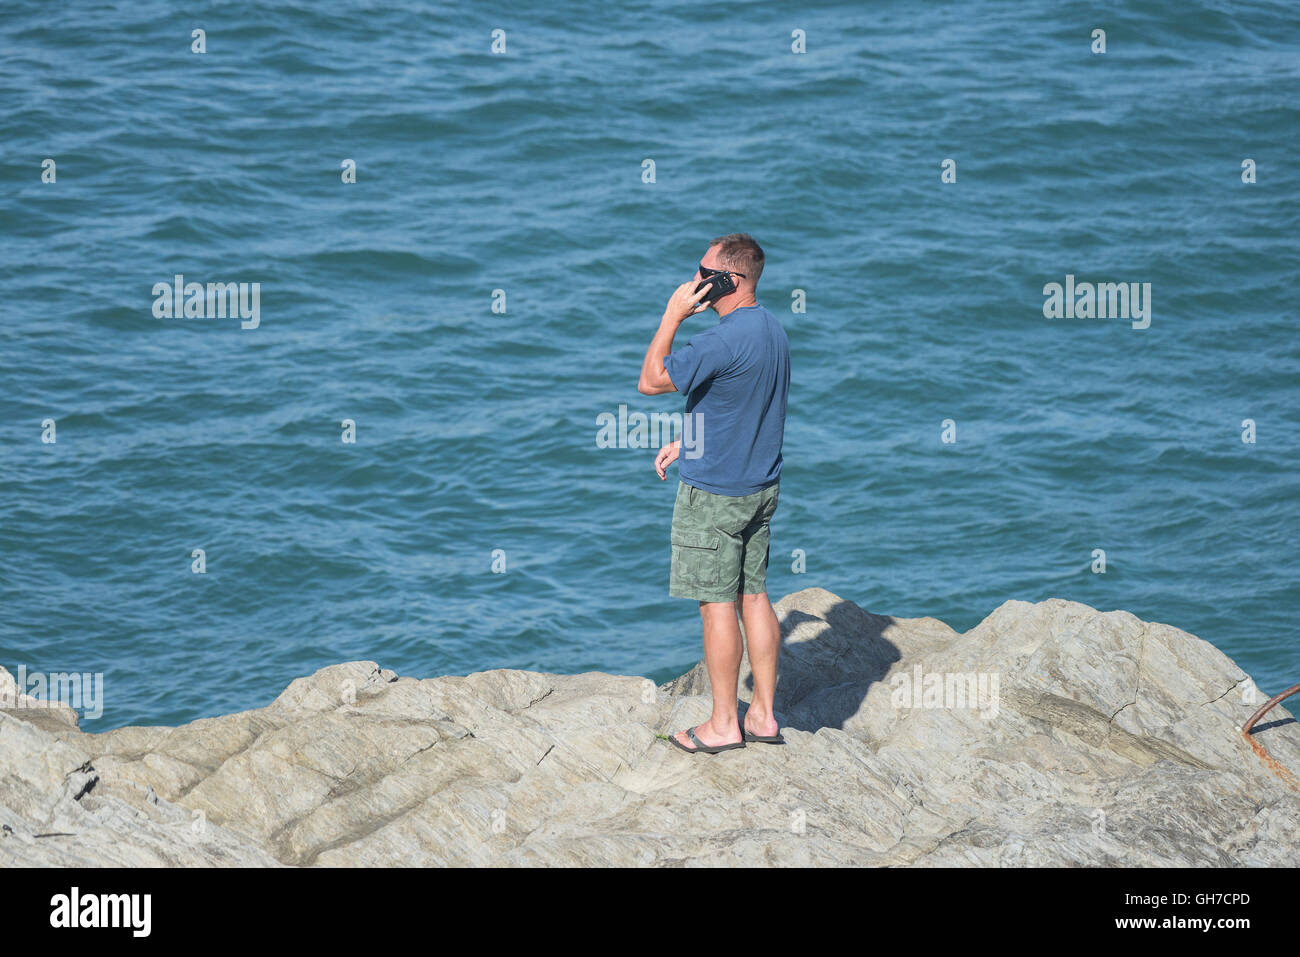 A holidaymaker uses a mobile phone as he stands on rocks near the sea. - Stock Image